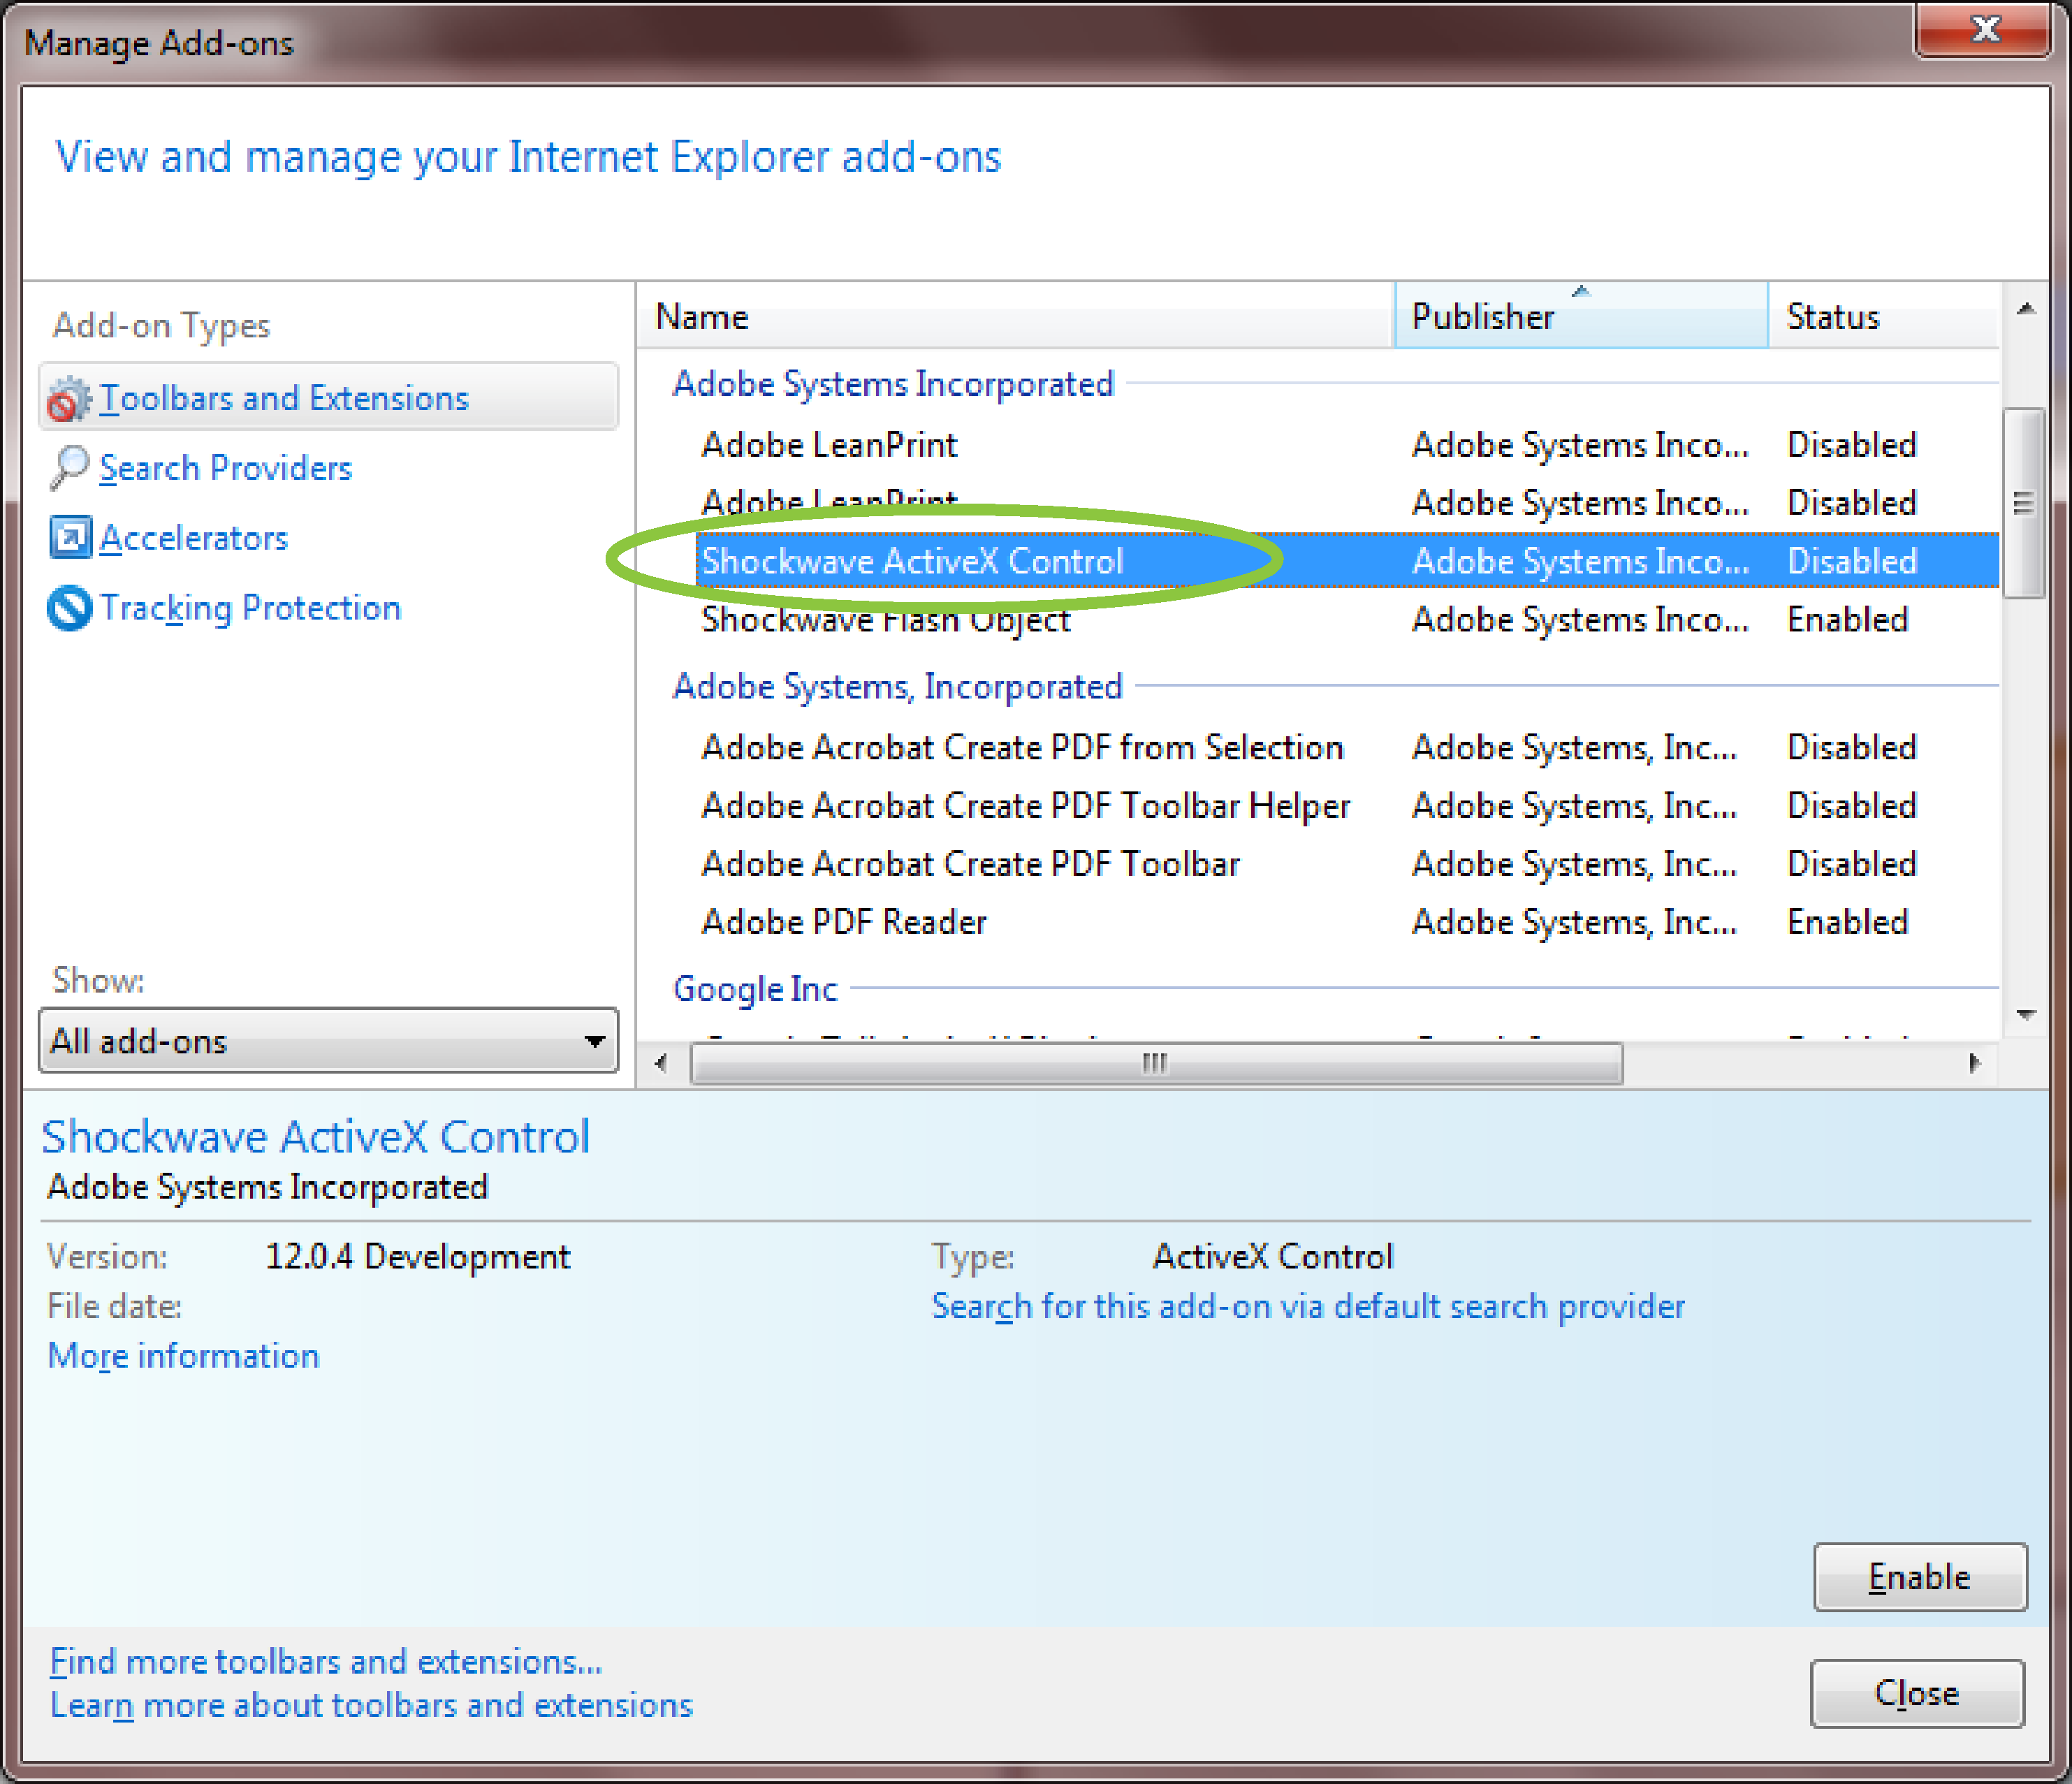 Manage Add-Ons dialog box, if Shockwave ActiveX Control is Disabled, highlight it